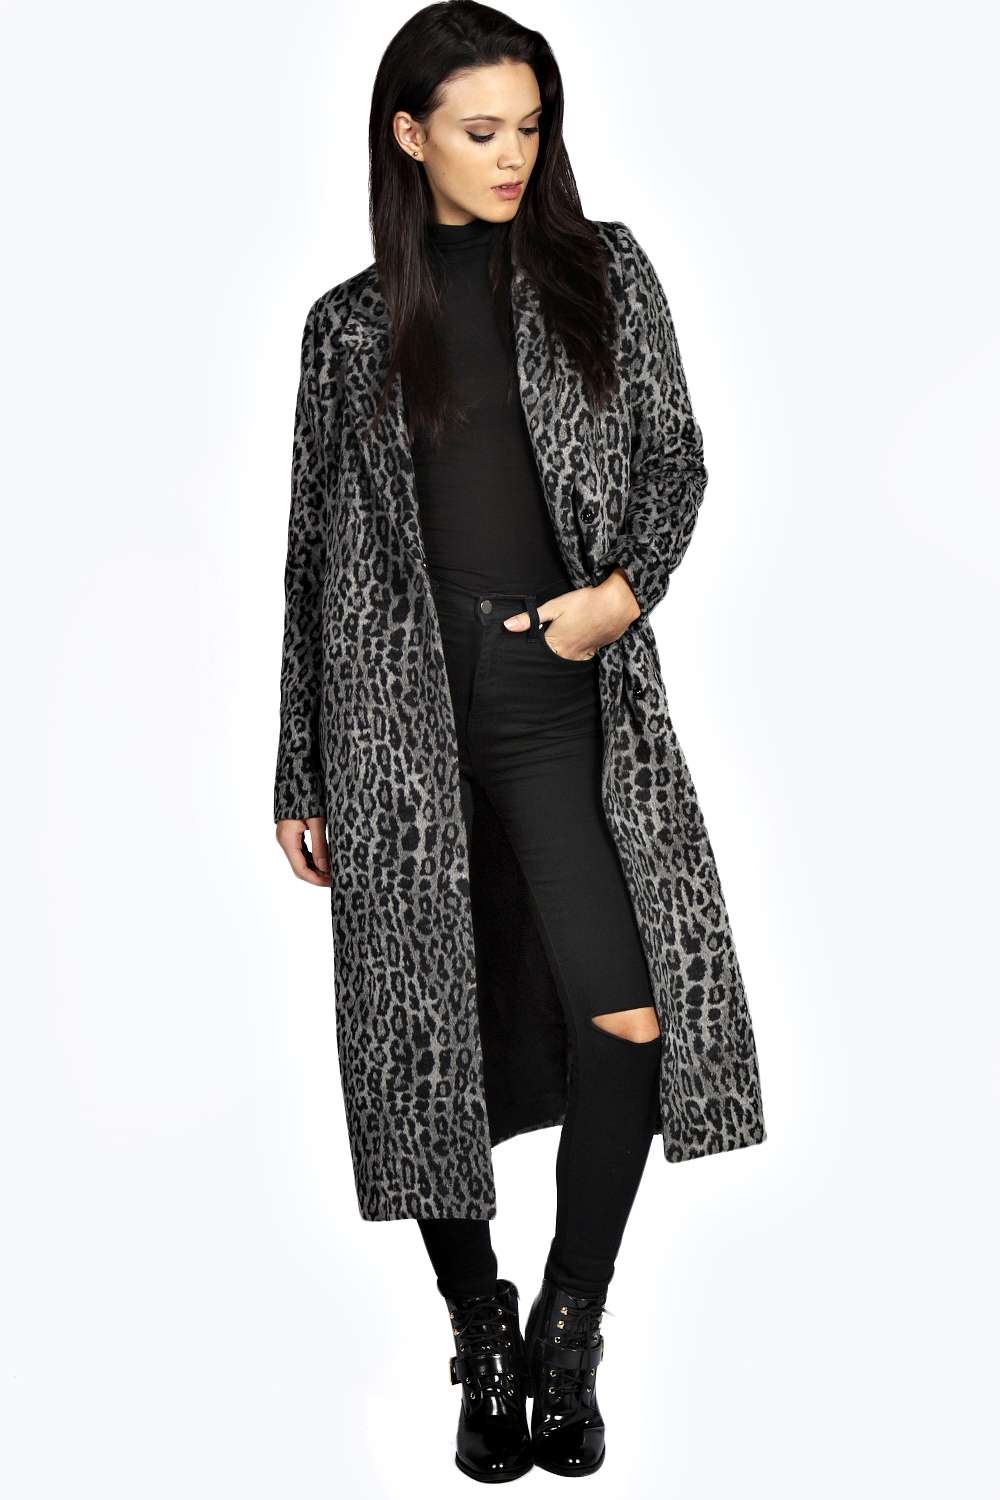 Boohoo Womens Sarah Leopard Print Maxi Coat Long Sleeves Collared ...